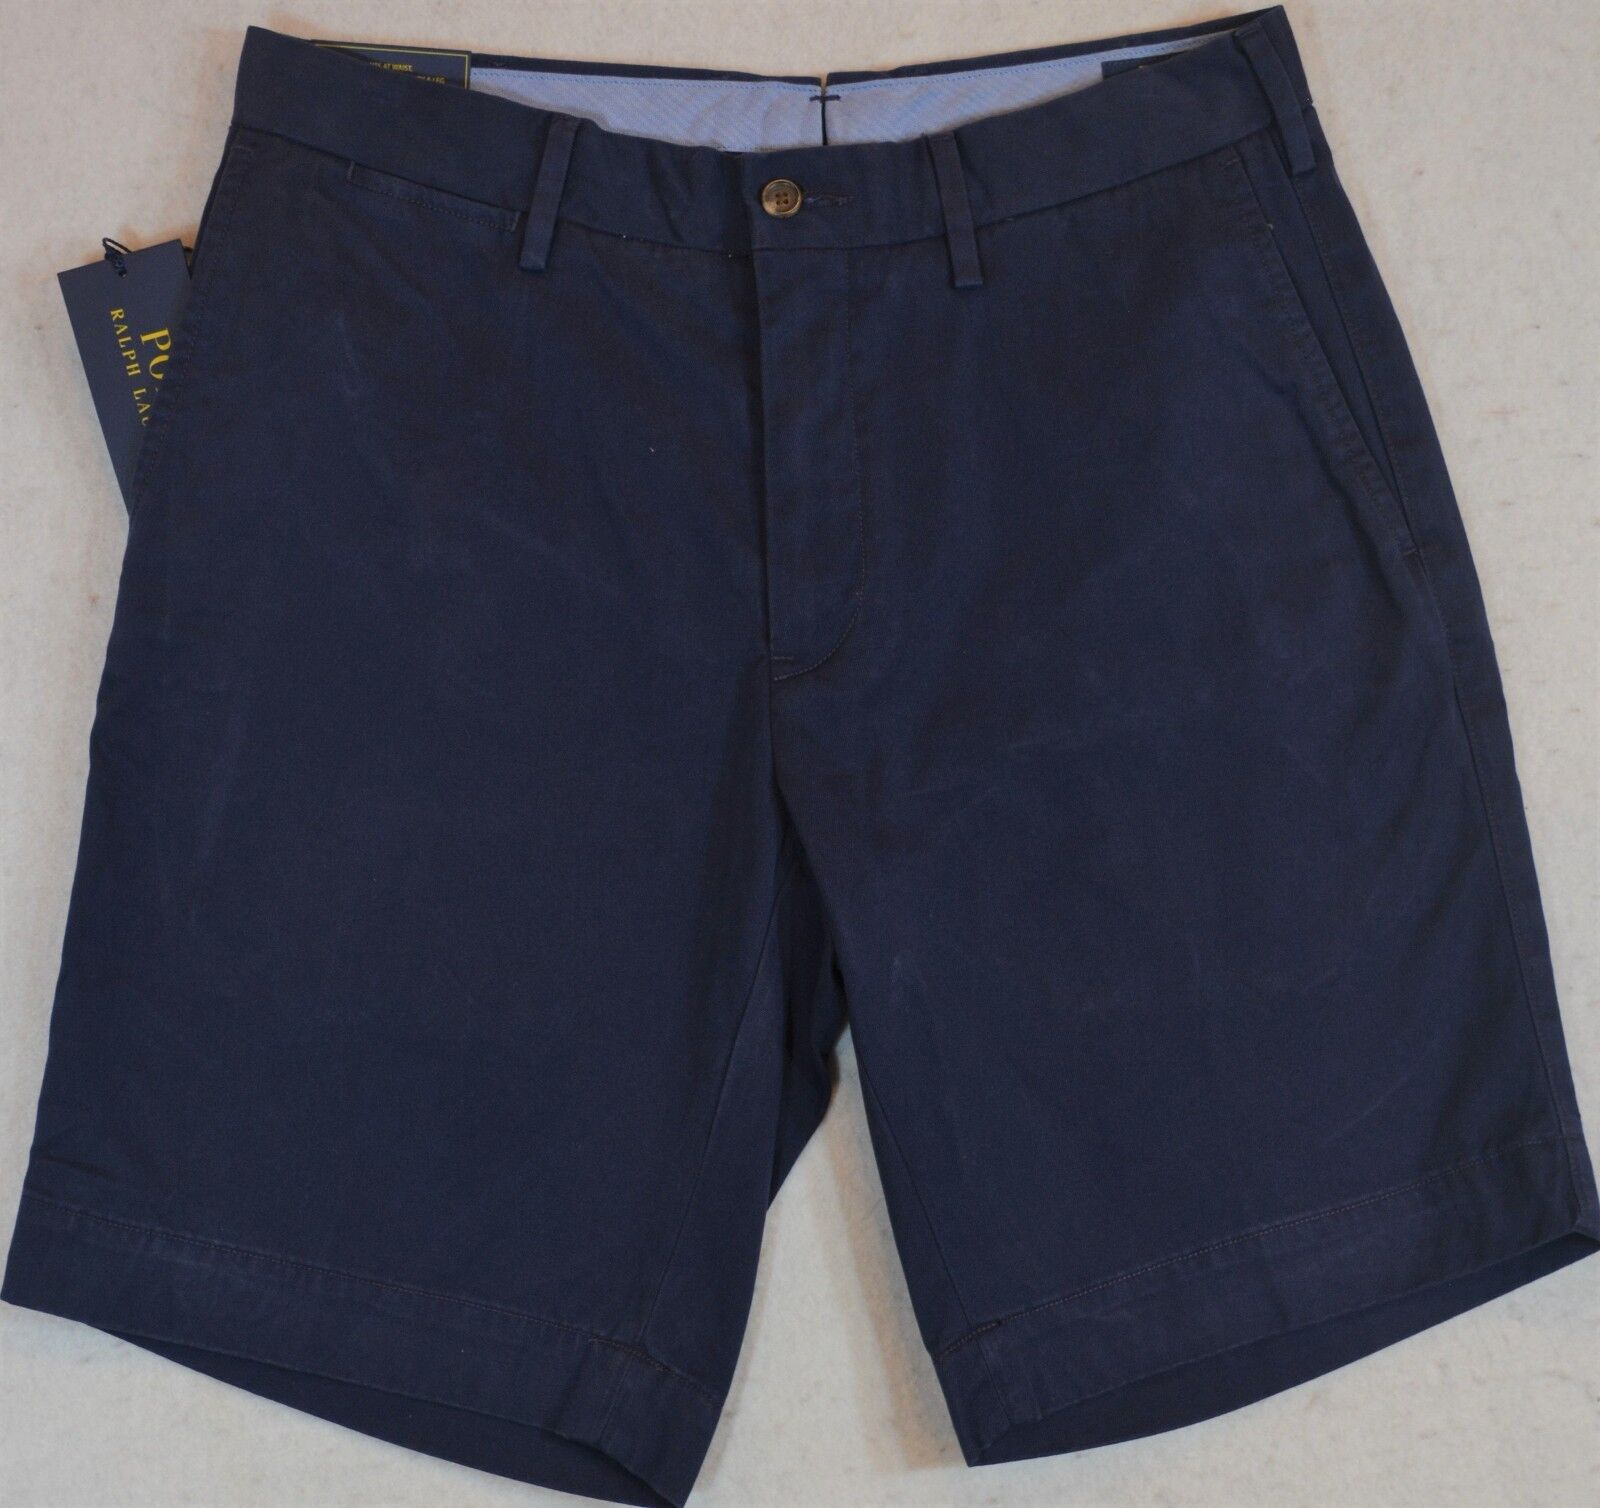 Polo Ralph Lauren Shorts Pima Cotton Classic Fit 9